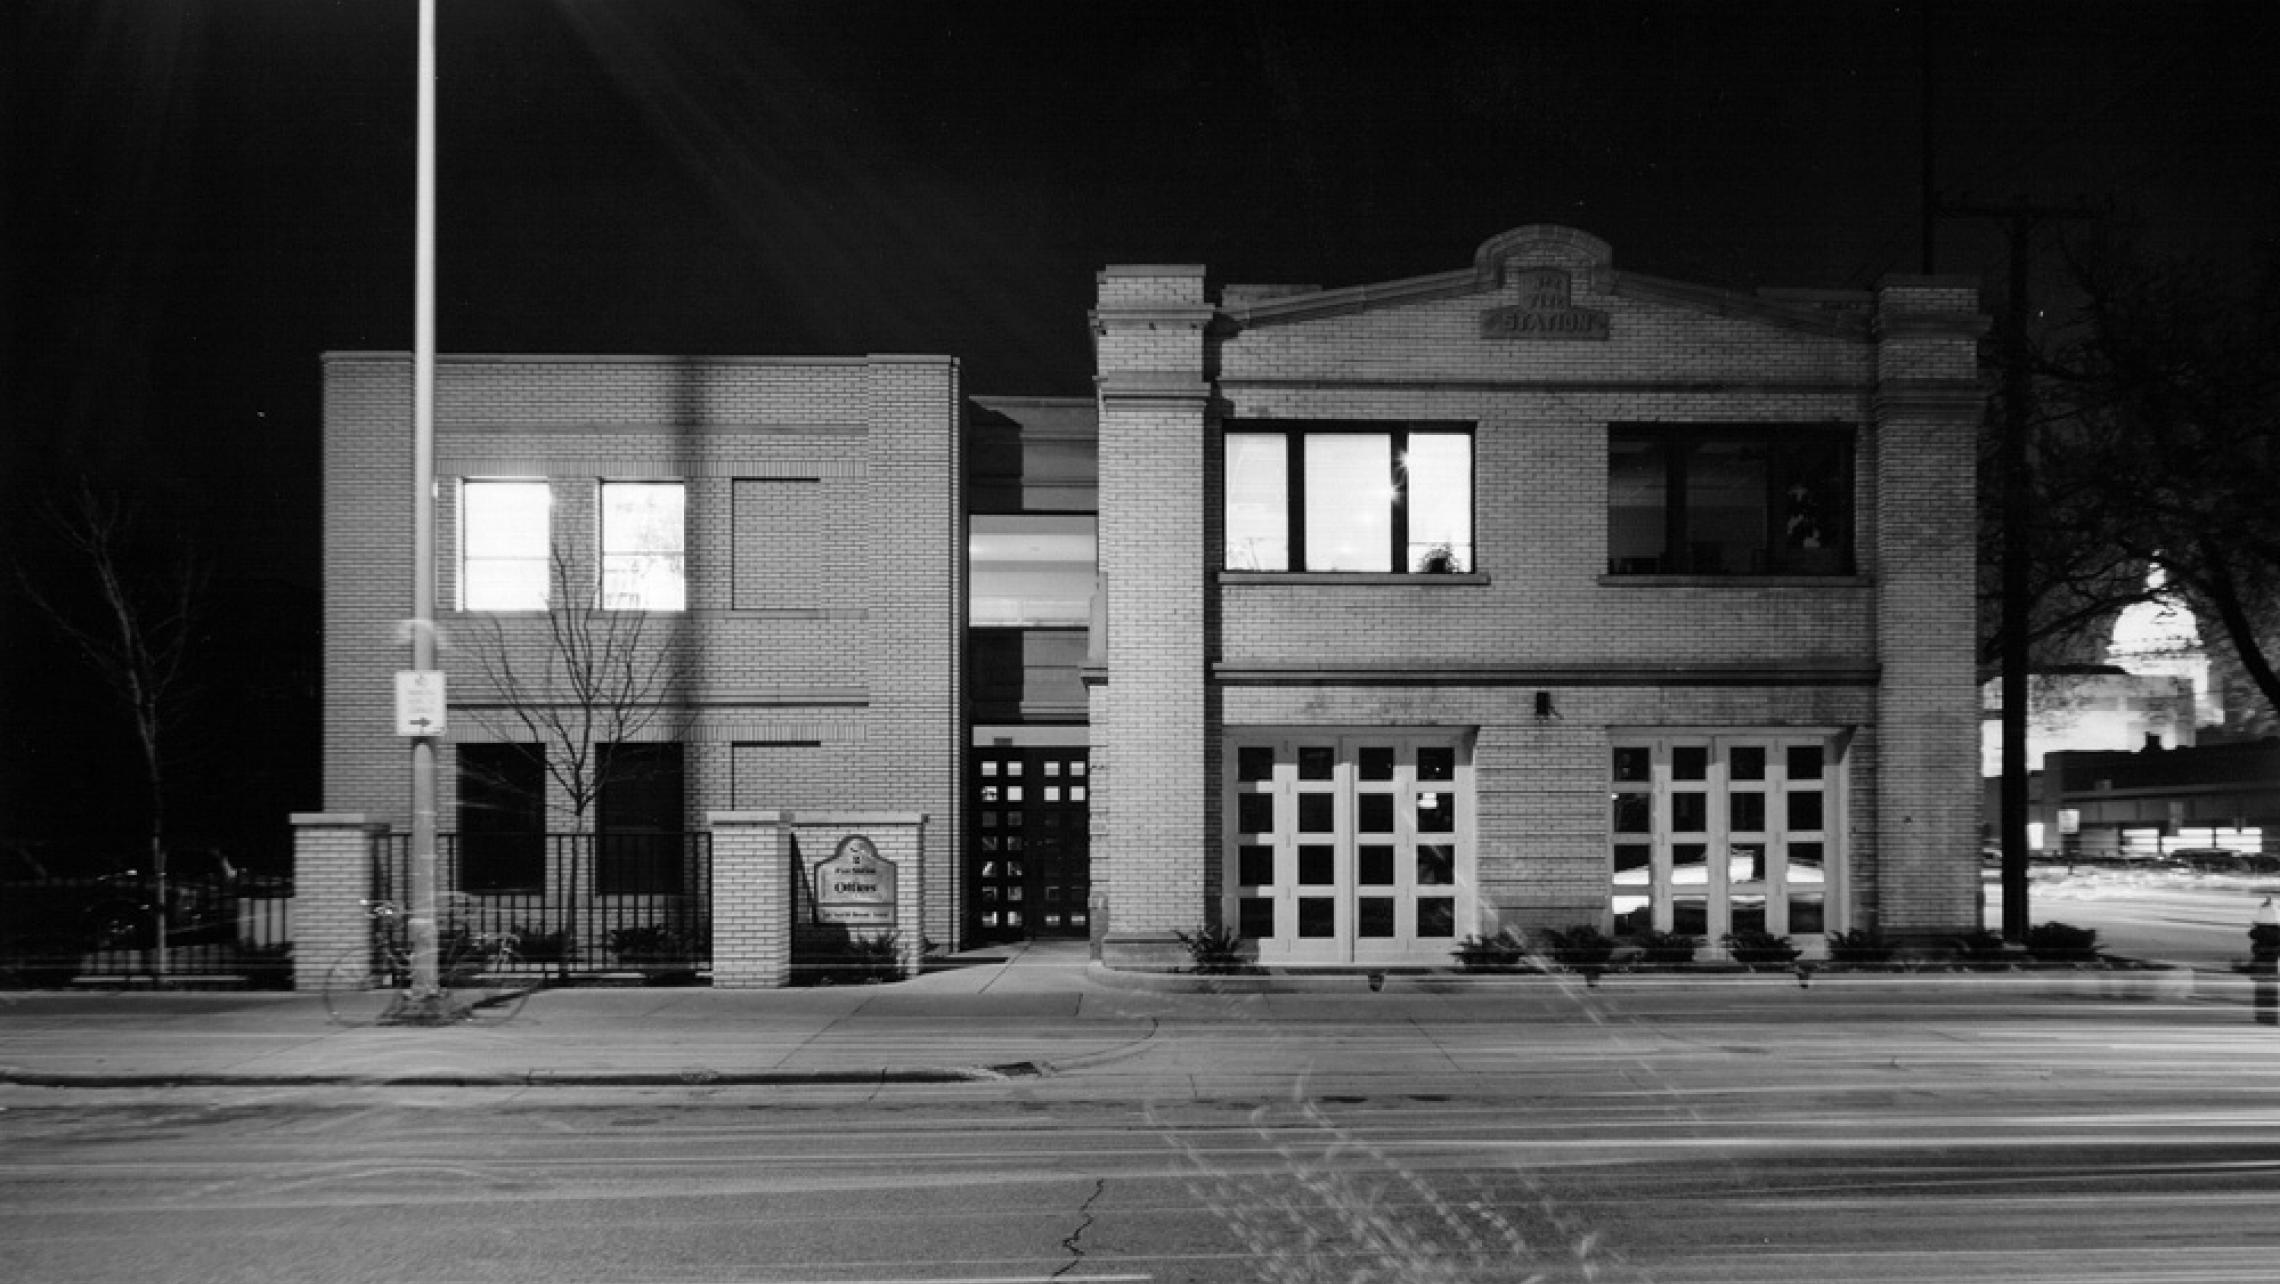 ULI Fire Station Number 2 - Black and White